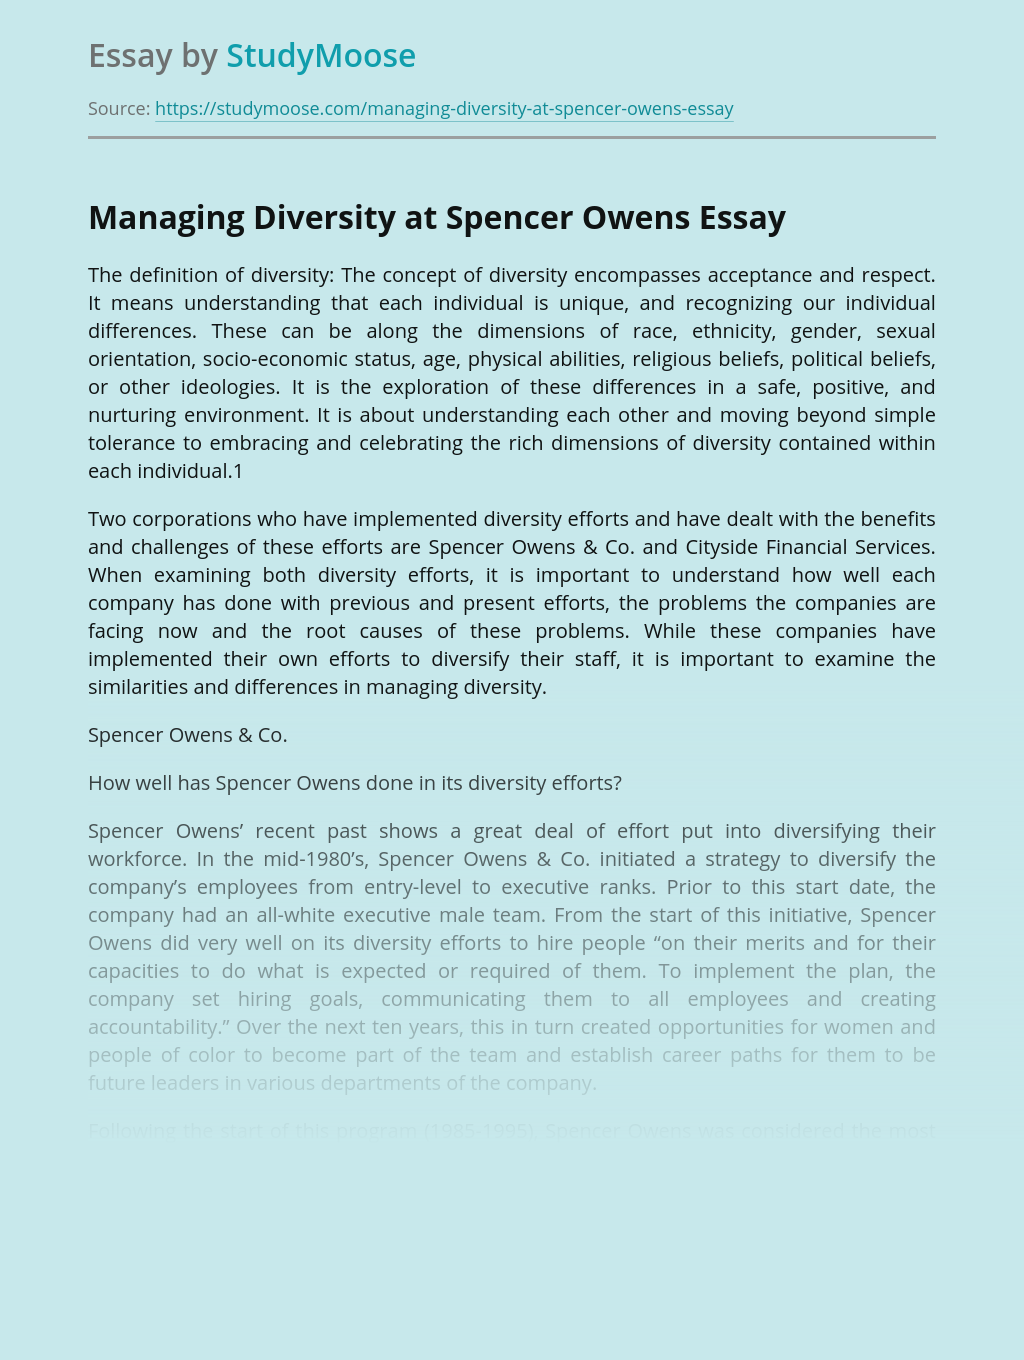 Managing Diversity at Spencer Owens